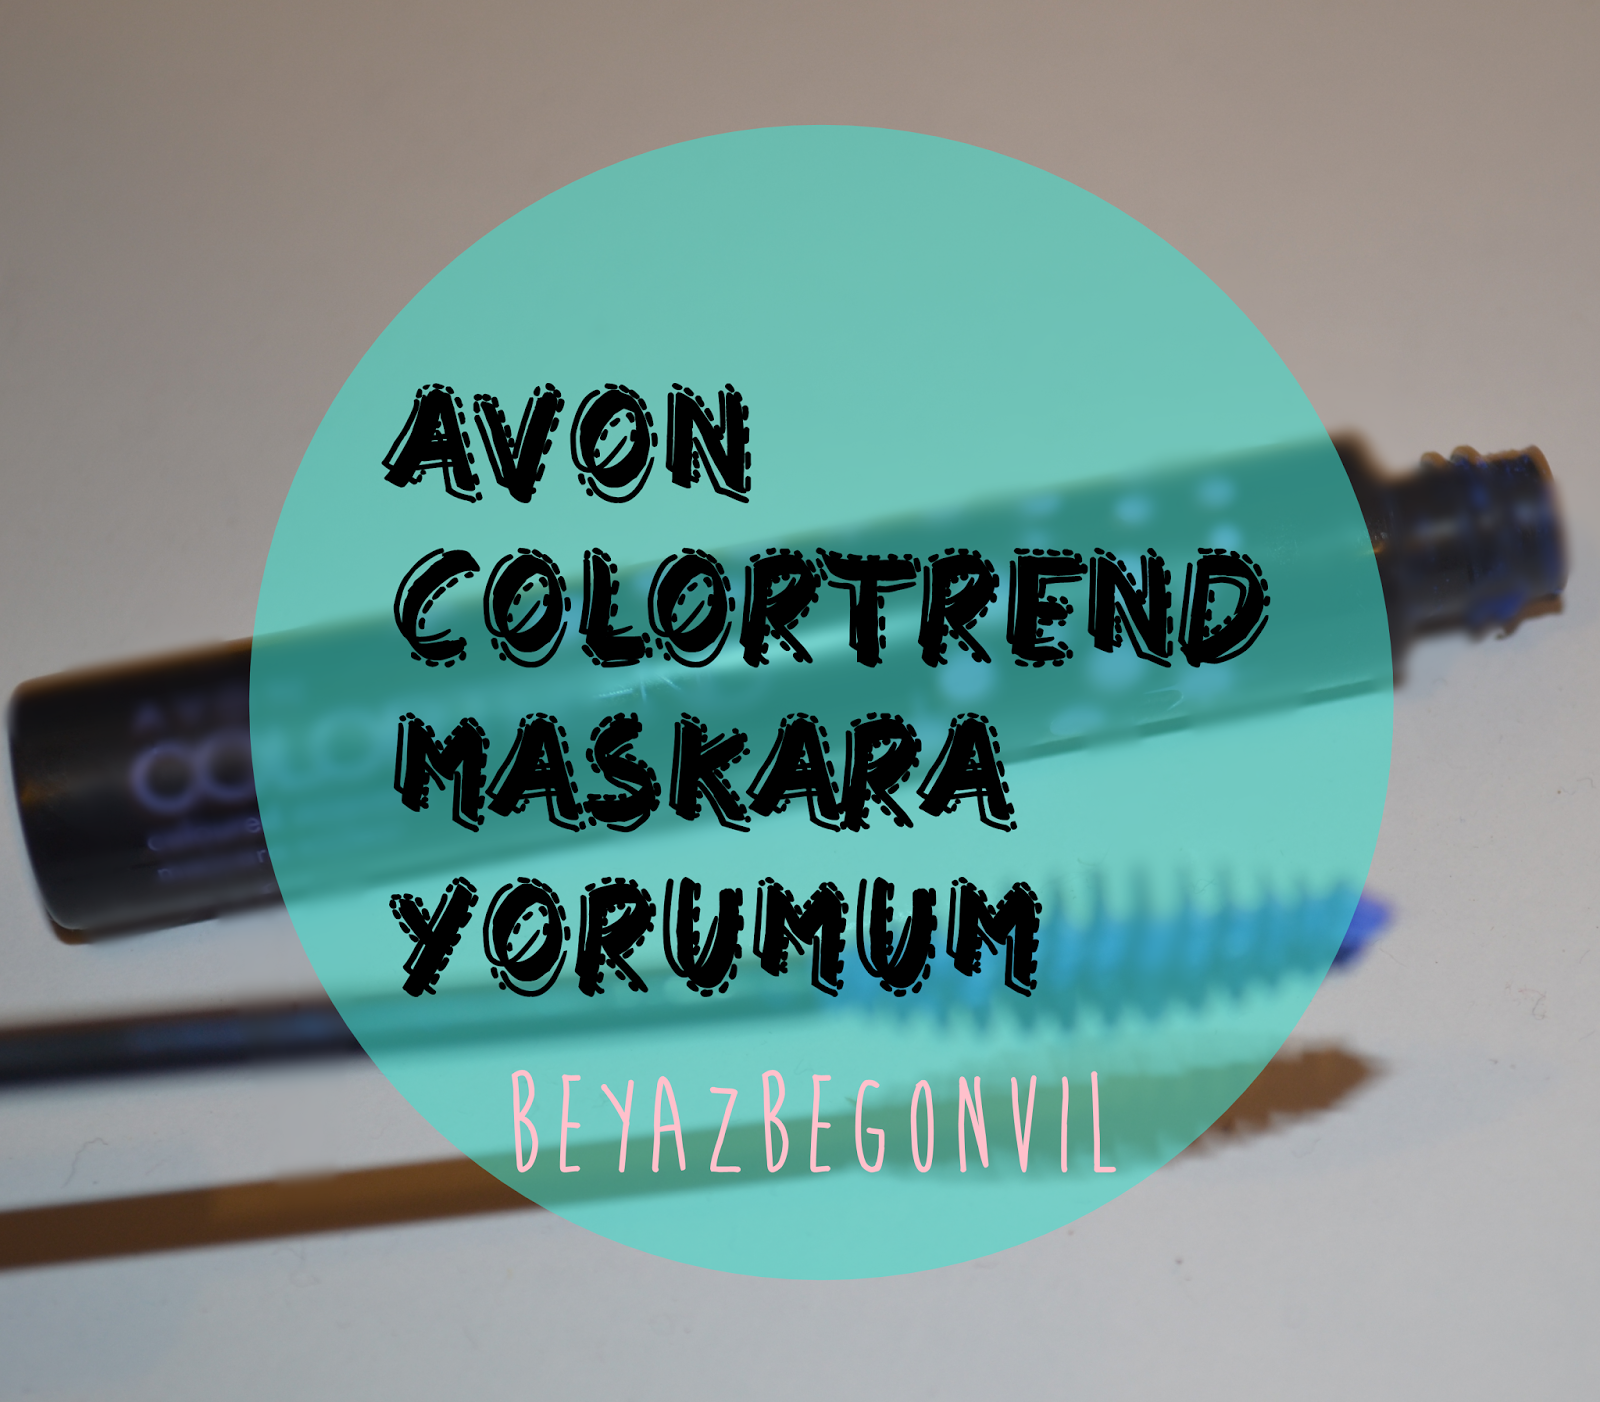 avoncolortrend mascara